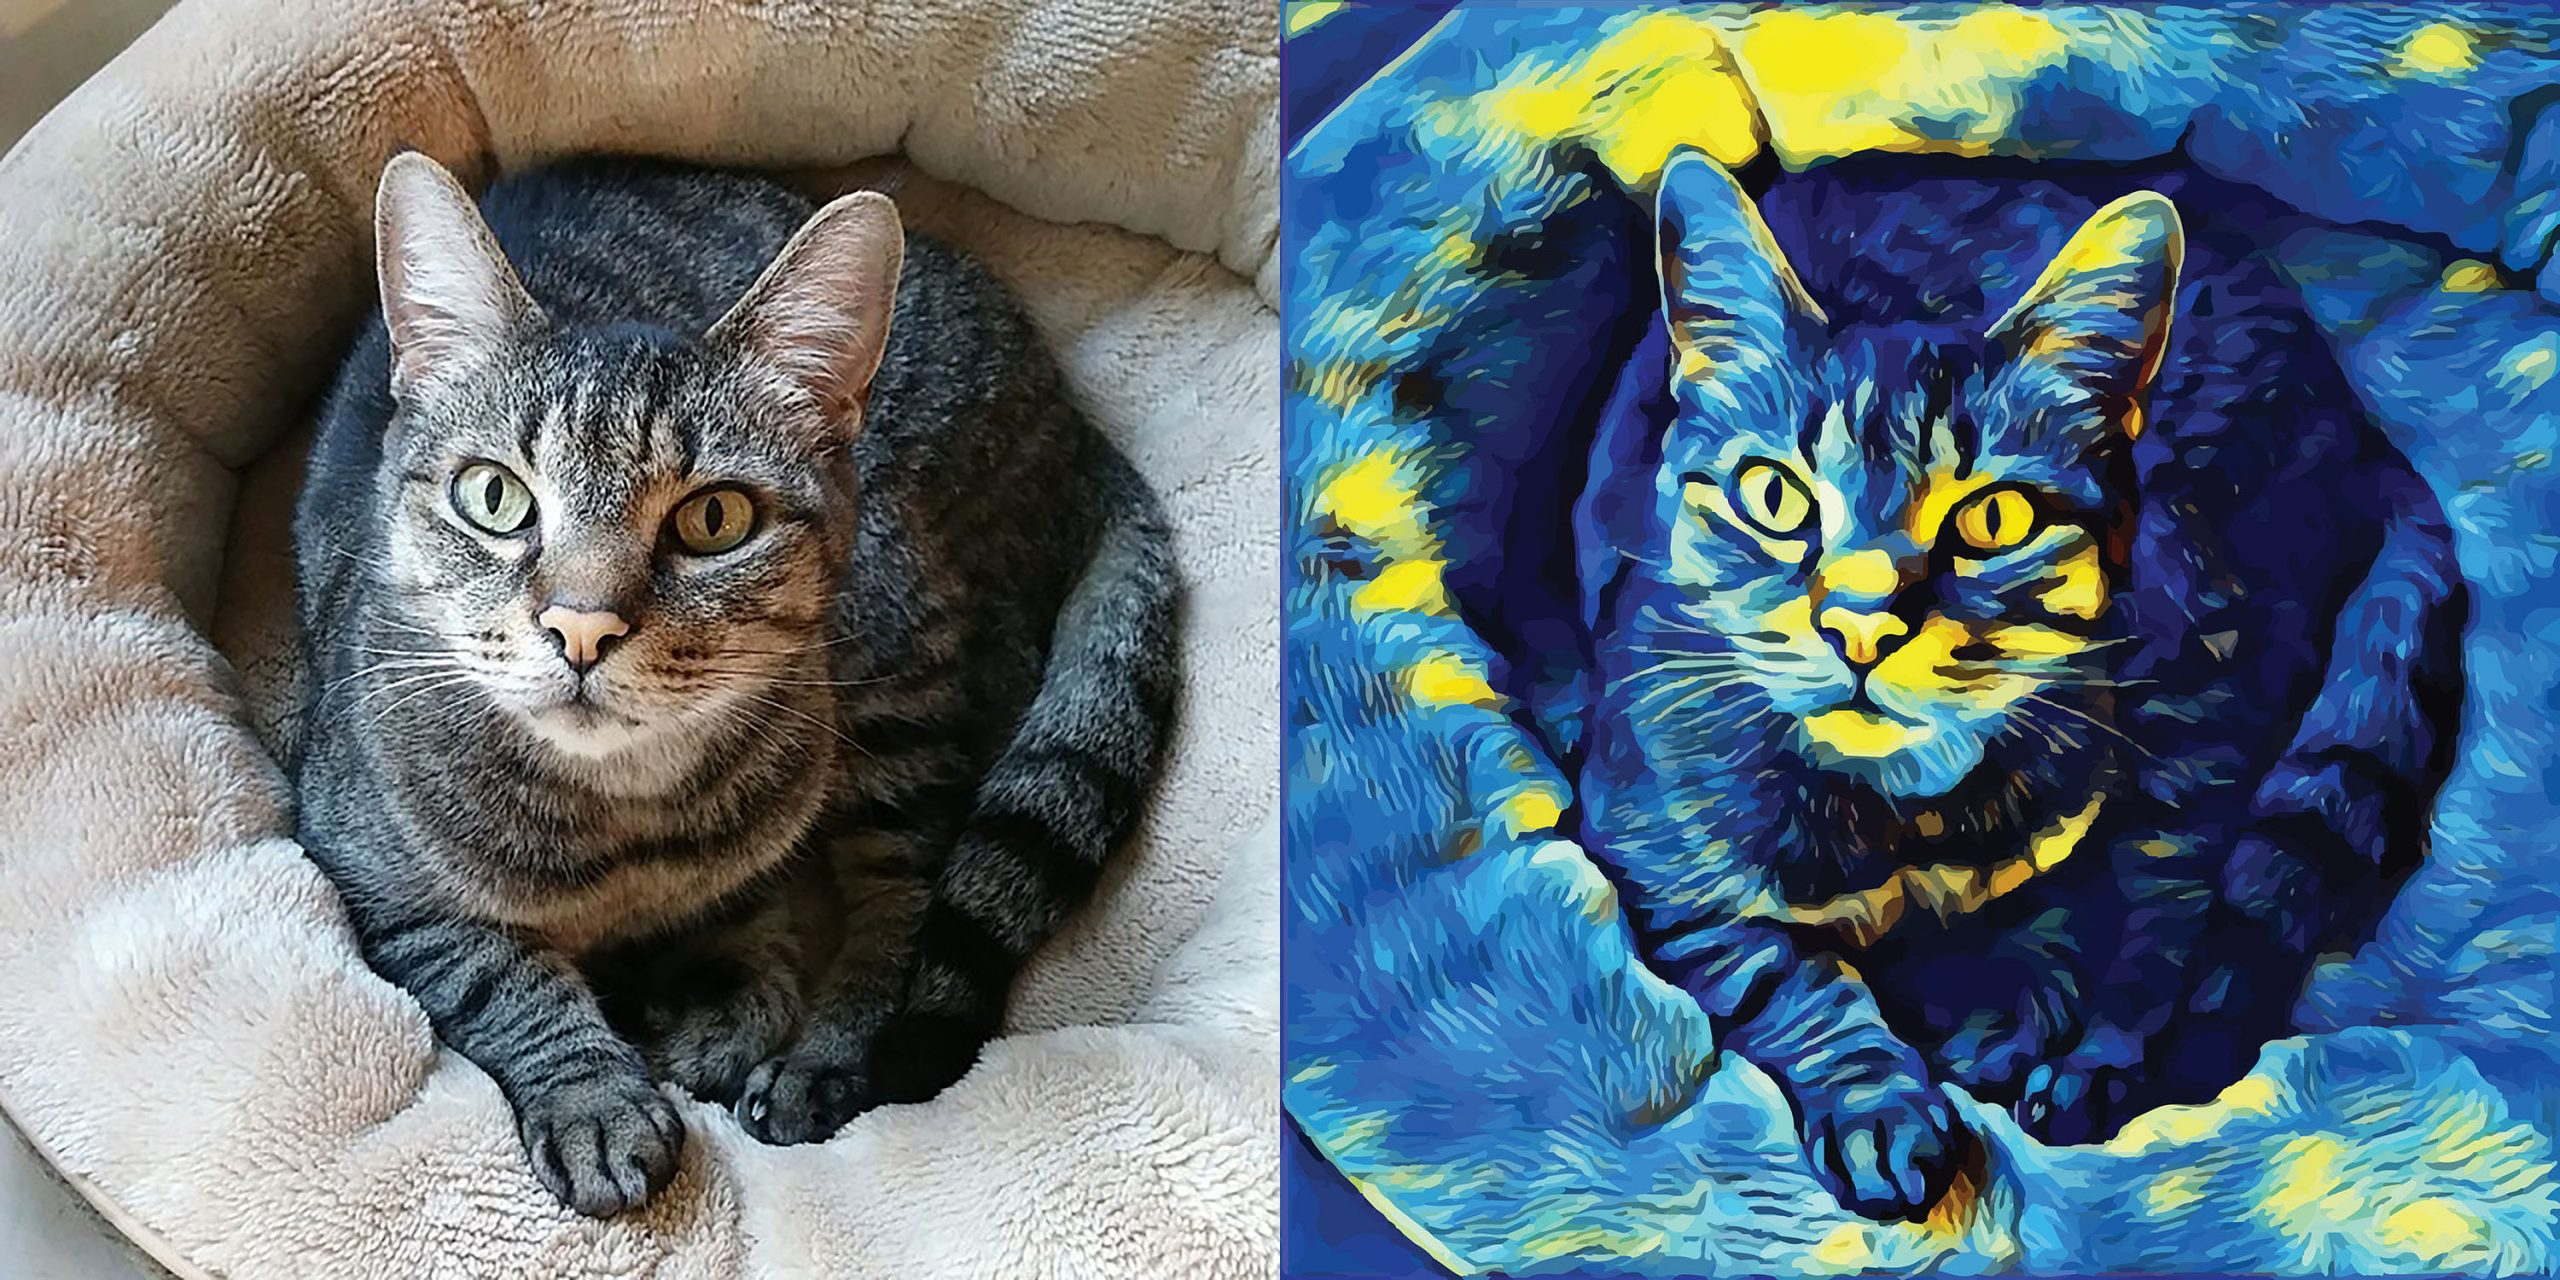 Before and after stylized image of a cat lying in its bed